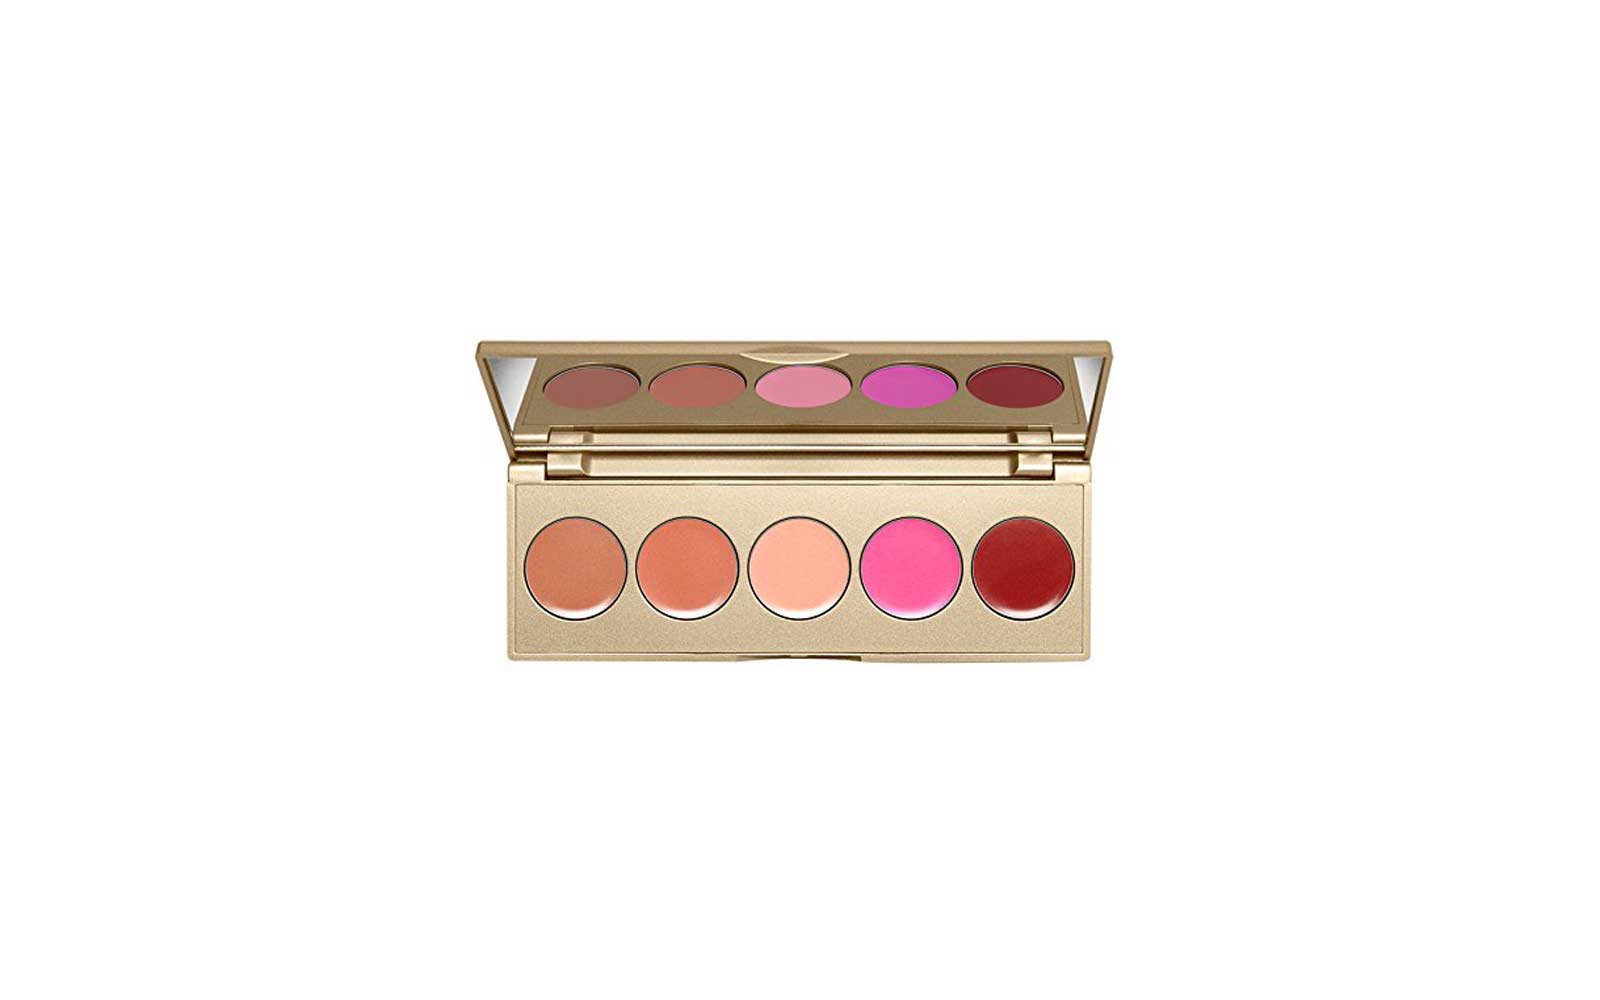 Stila Convertible Color Dual Lip and Cheek Palette